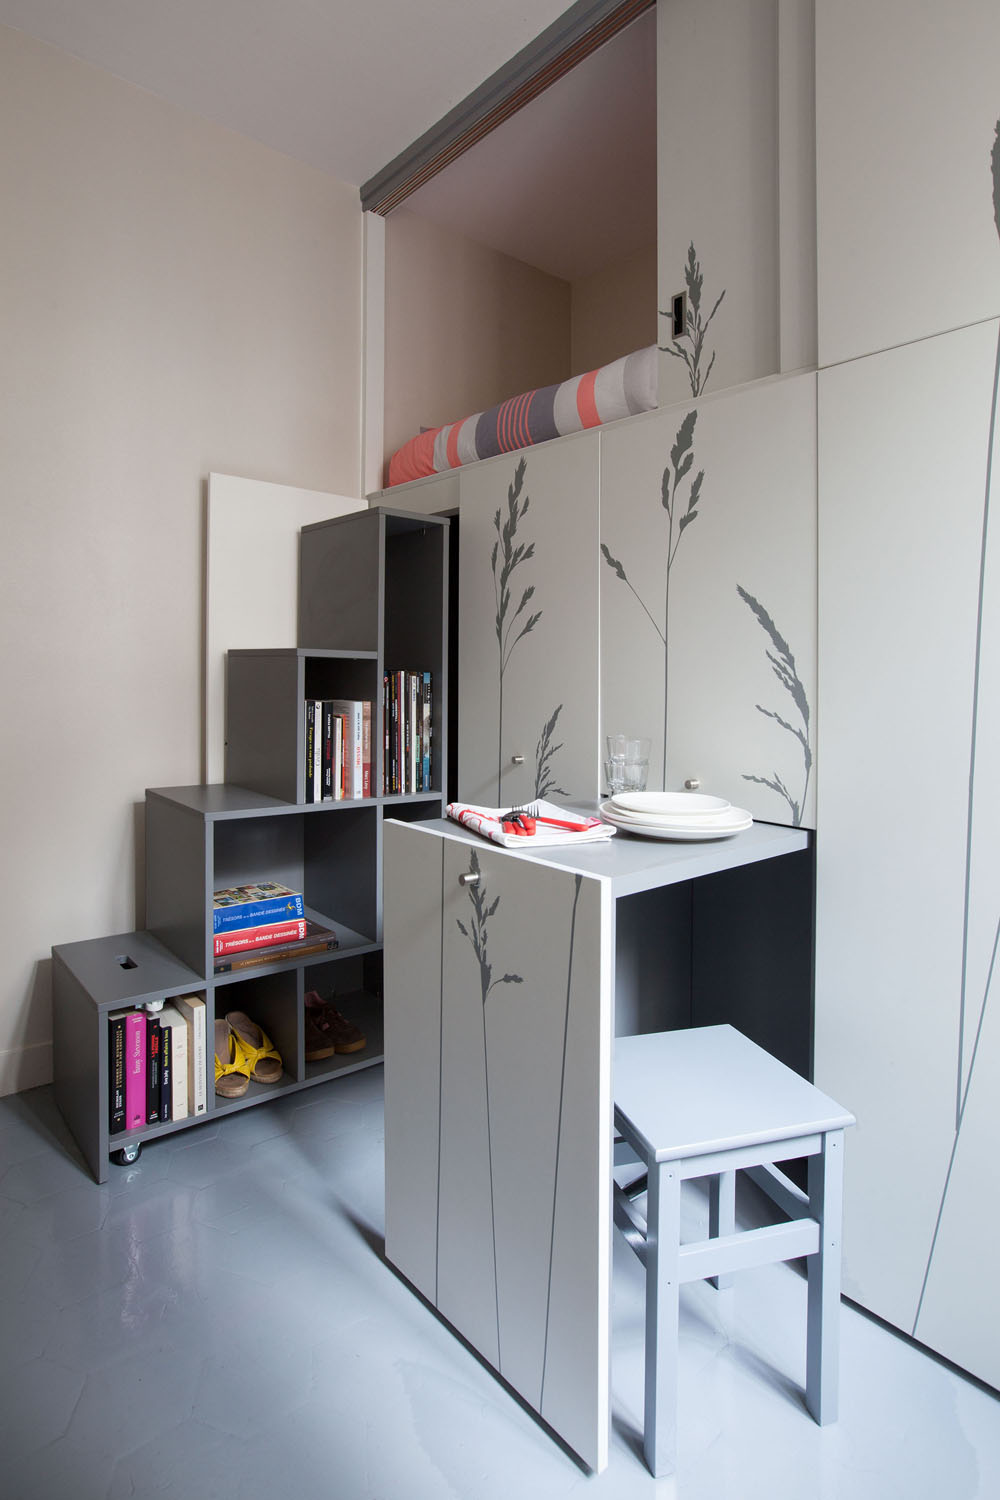 Compact Apartment In Paris by Kitoko Studio 13 Incredibly Small Apartment in Paris Reduces Functions to Minimum